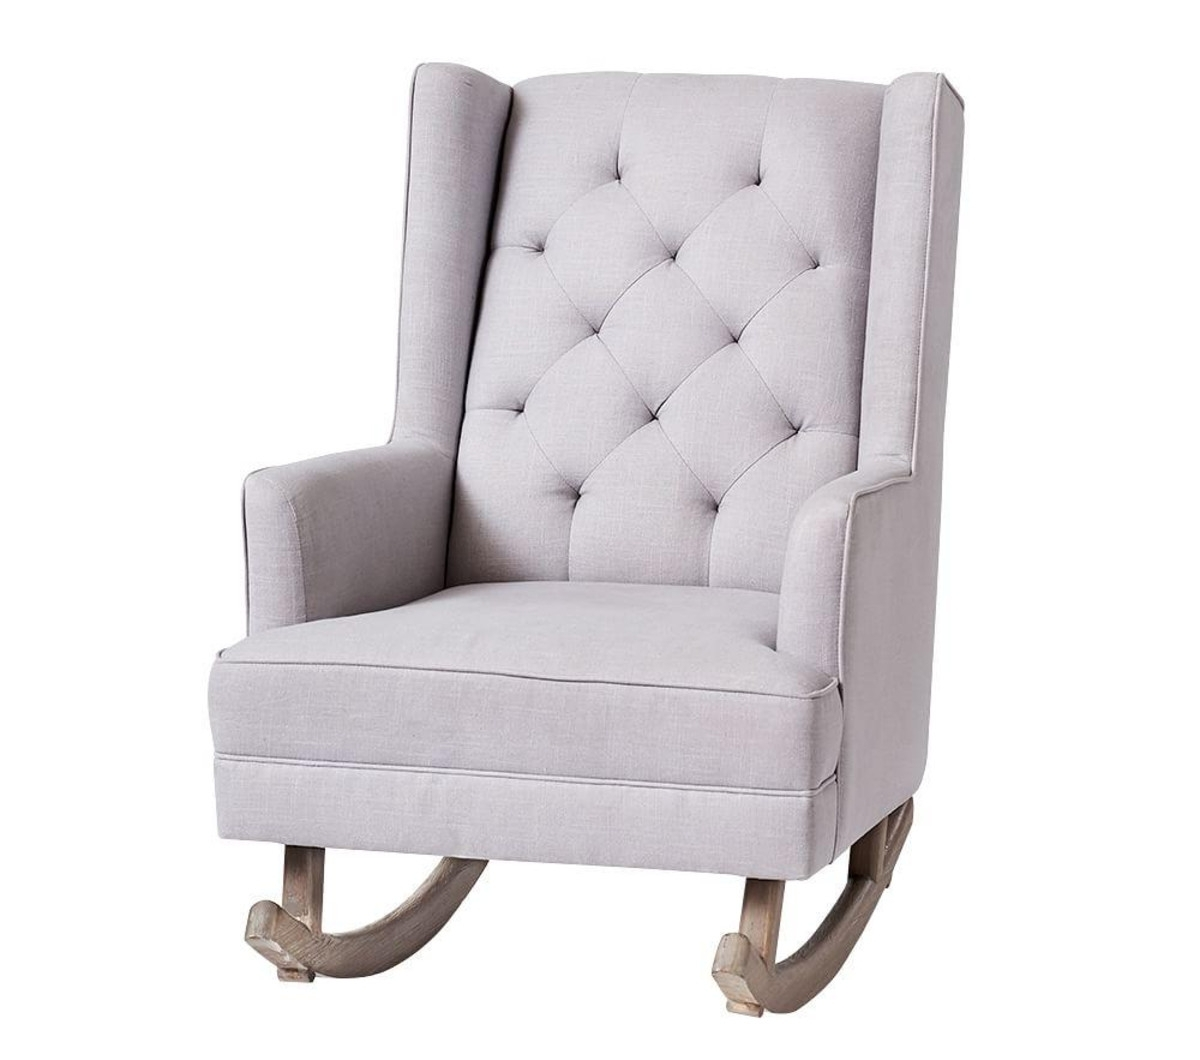 Well Known Rocking Chair For Nursery Au F85X On Brilliant Furniture For Small Throughout Rocking Chairs For Small Spaces (View 14 of 15)